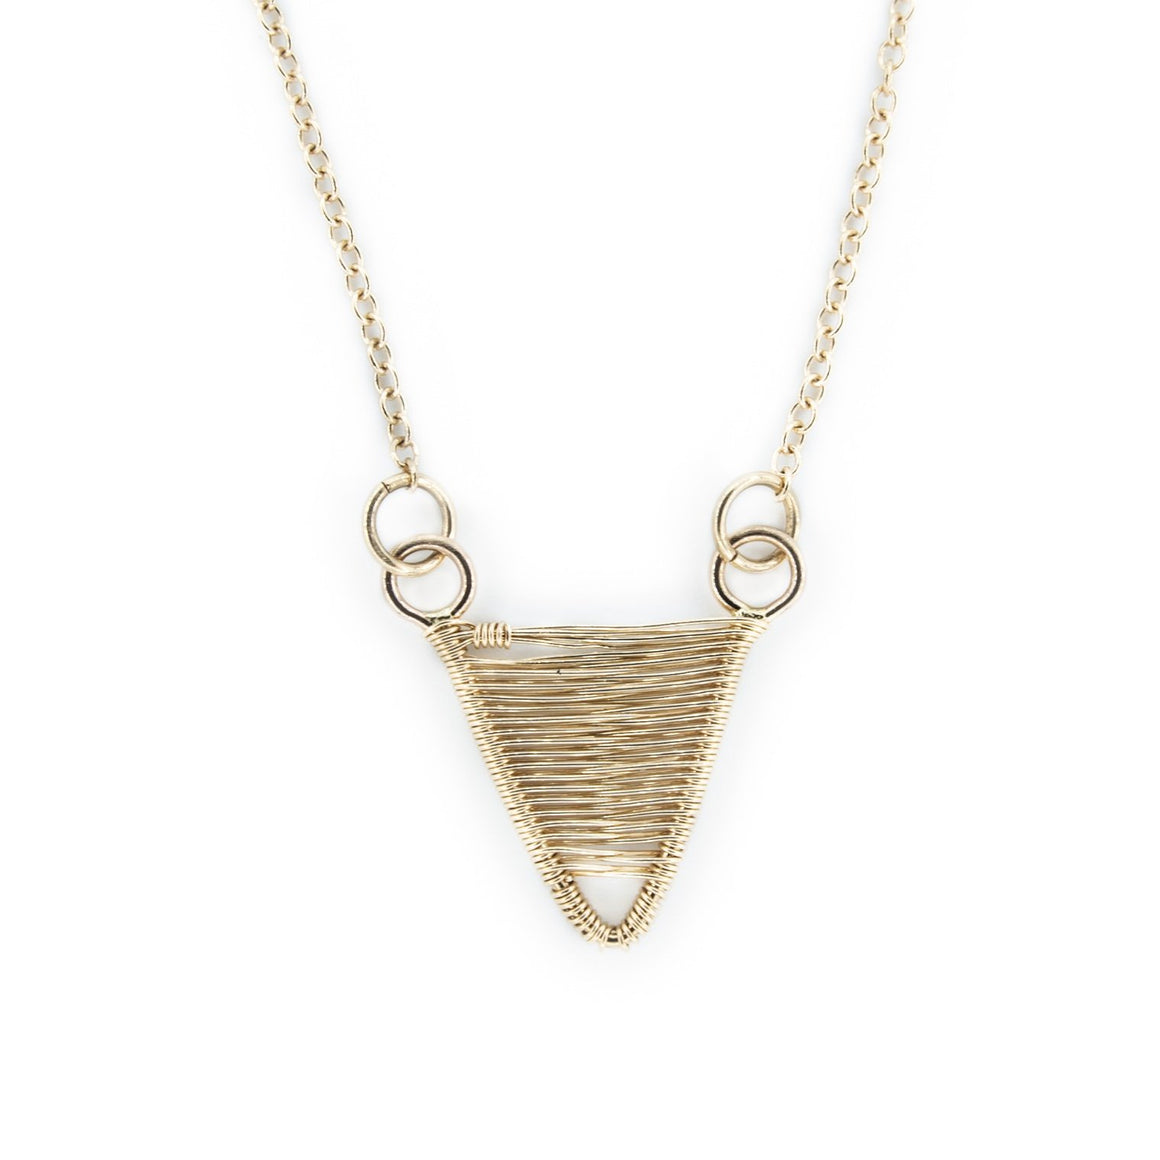 Woven 14k Gold Tiny Shield Necklace by Original Sin Jewelry